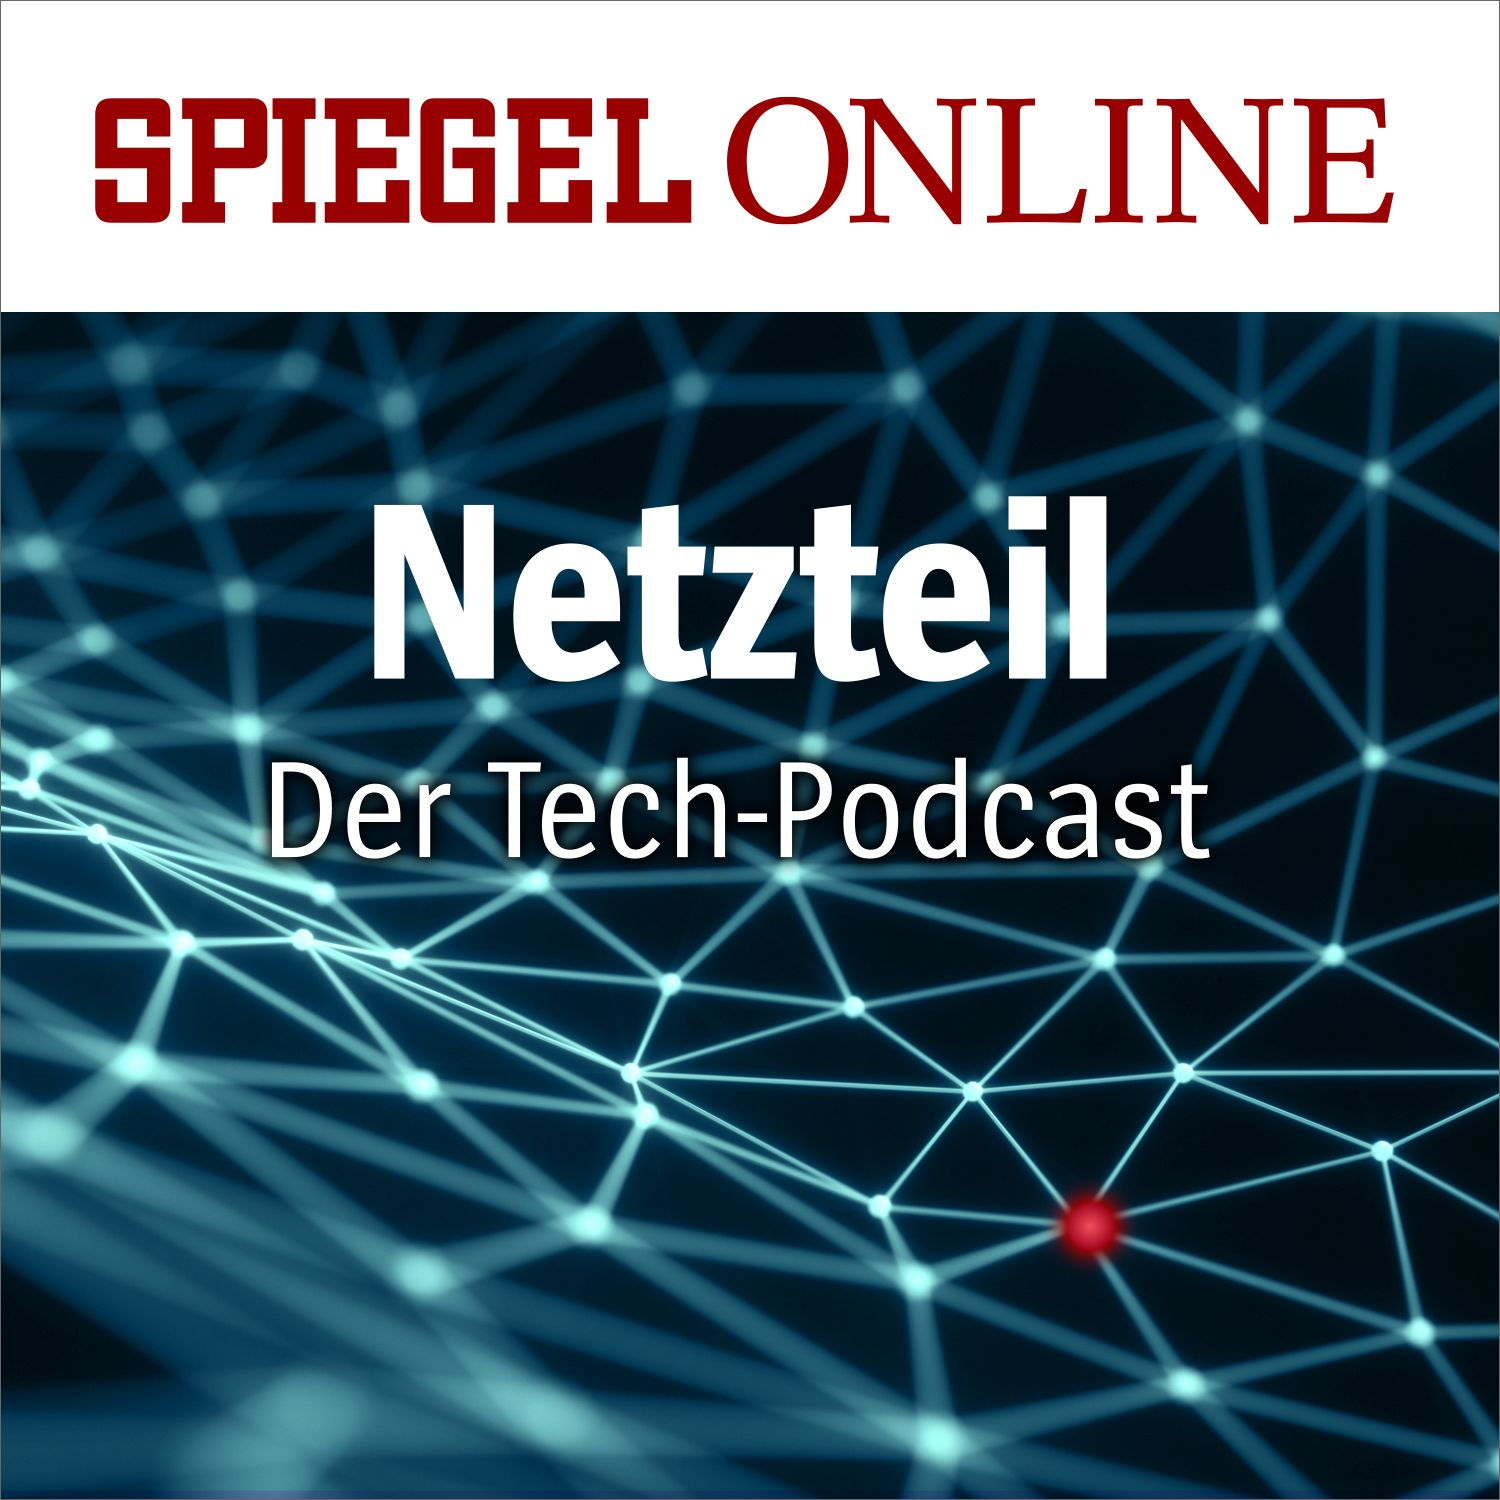 Spiehel Online Statistics And Analytics For Netzteil Der Tech Podcast Von